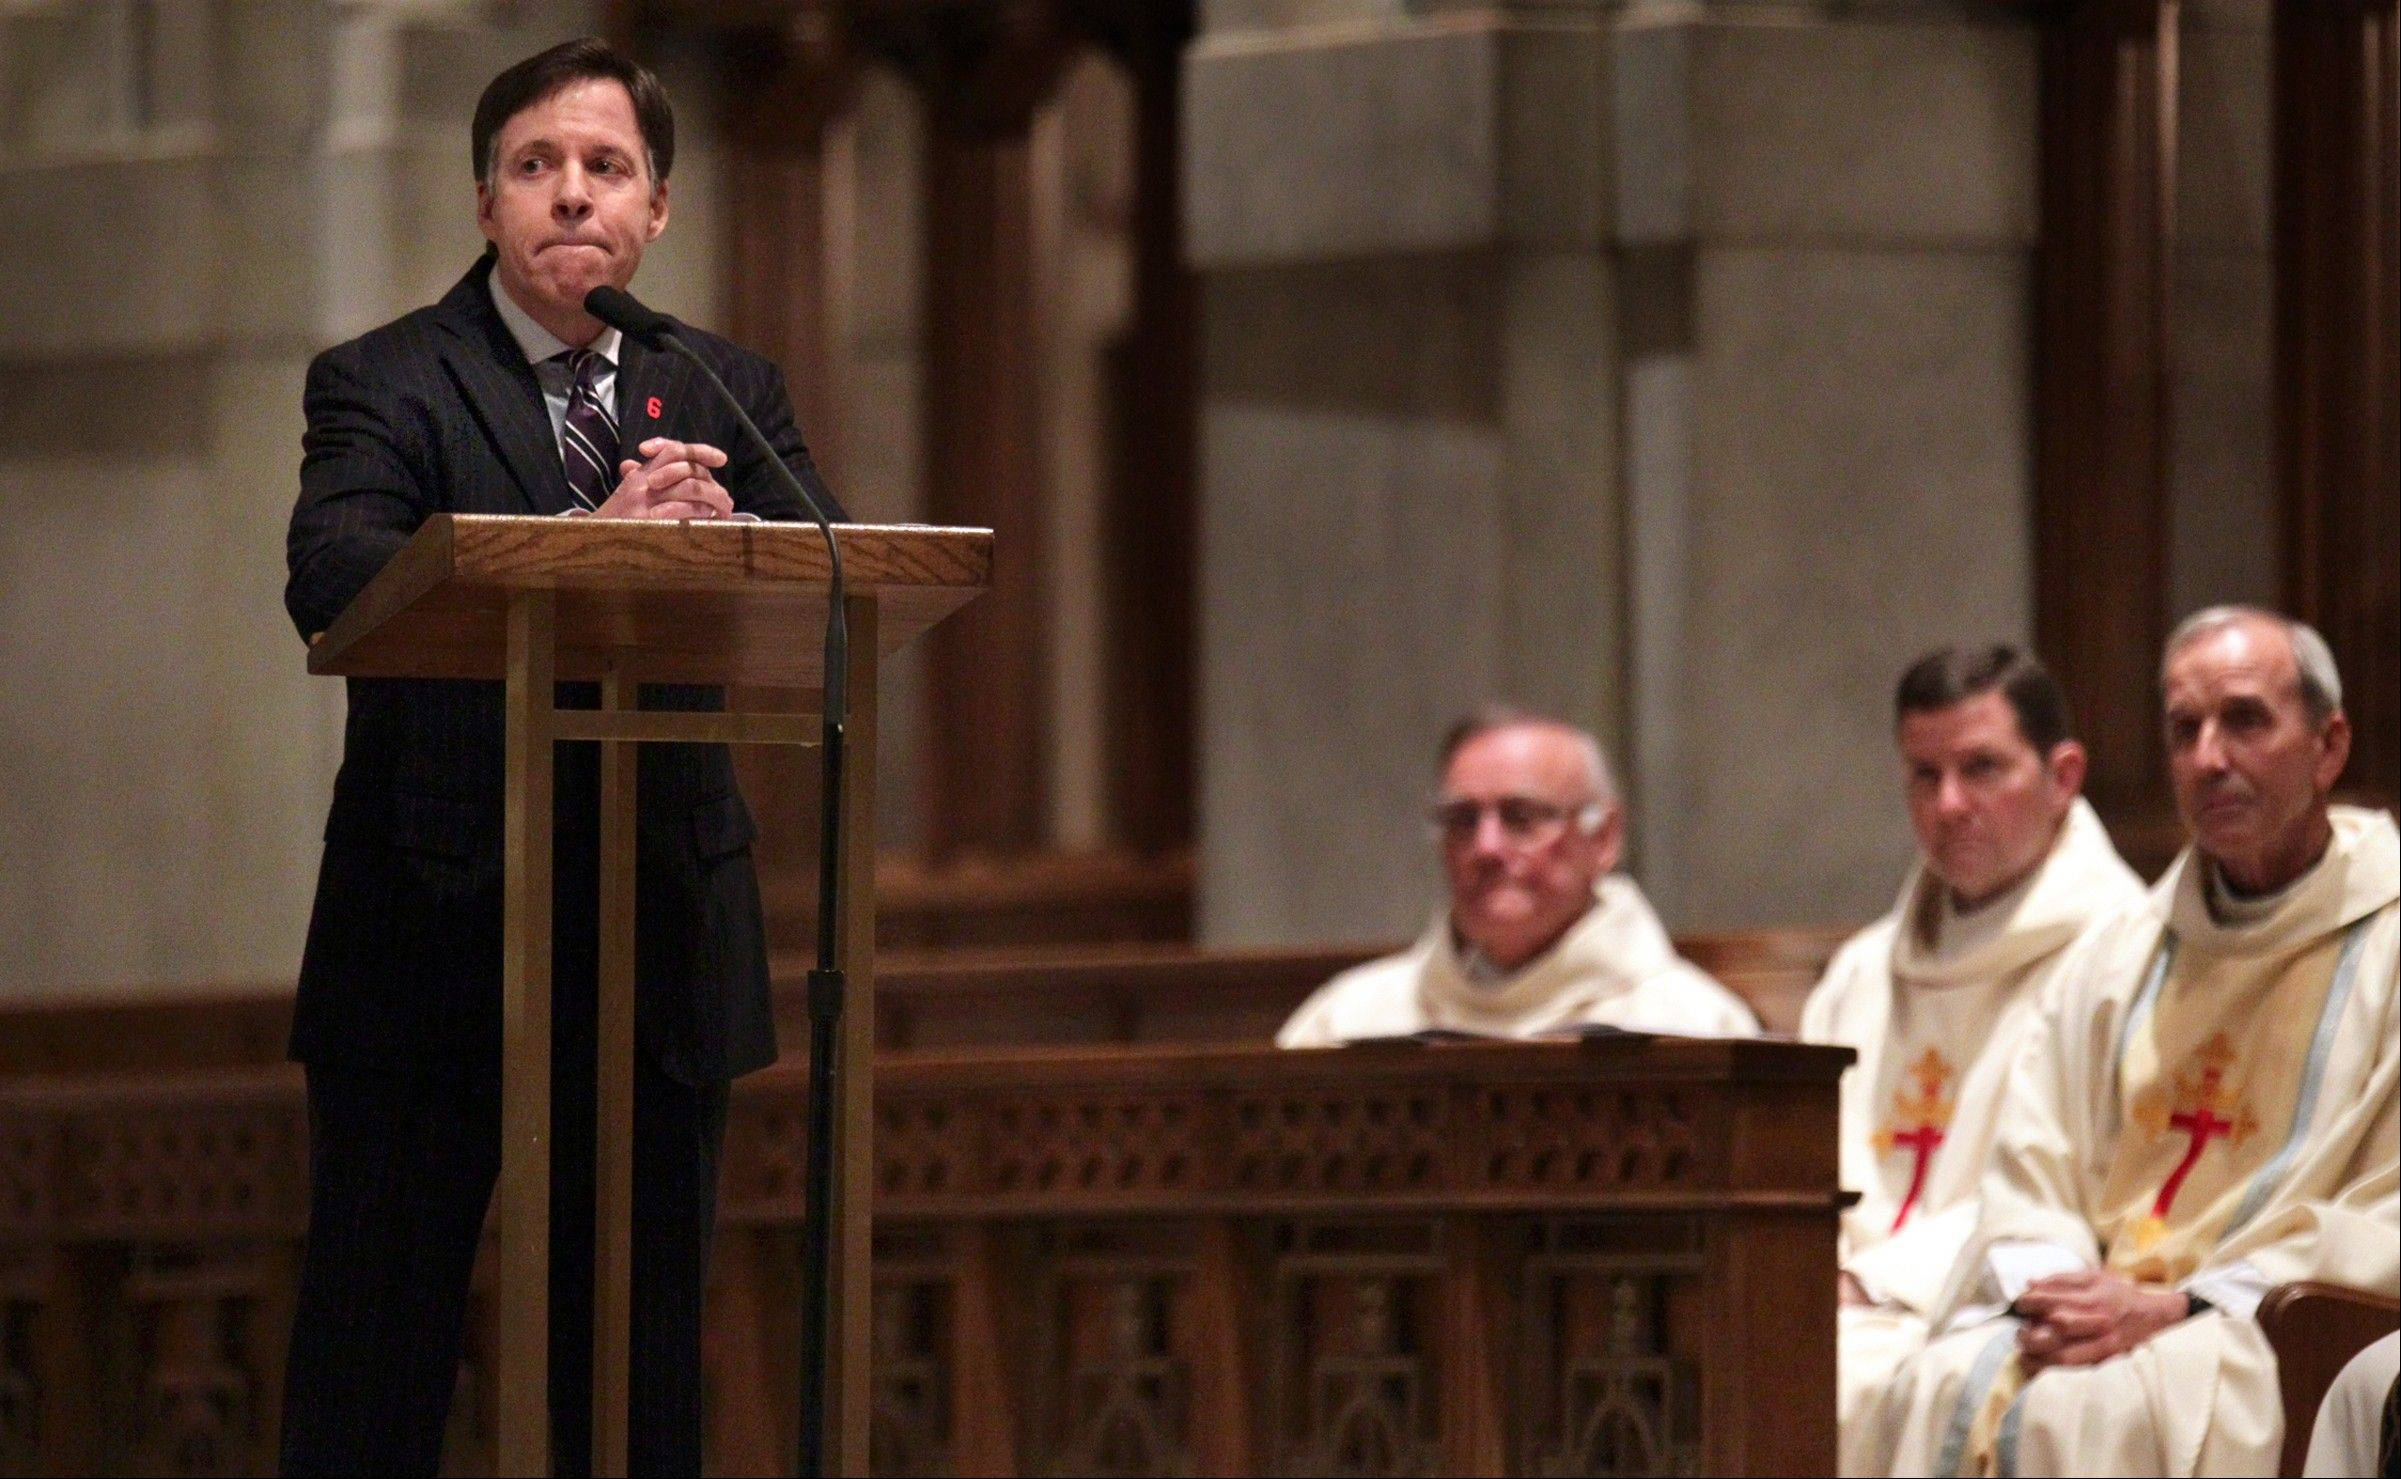 Broadcaster Bob Costas pauses during the funeral Mass for former St. Louis Cardinals baseball player Stan Musial at Cathedral Basilica on Saturday, Jan. 26, 2013, in St. Louis. Musial, who played with the St. Louis Cardinals for his entire 22-year- career, died Jan. 19. He was 92.